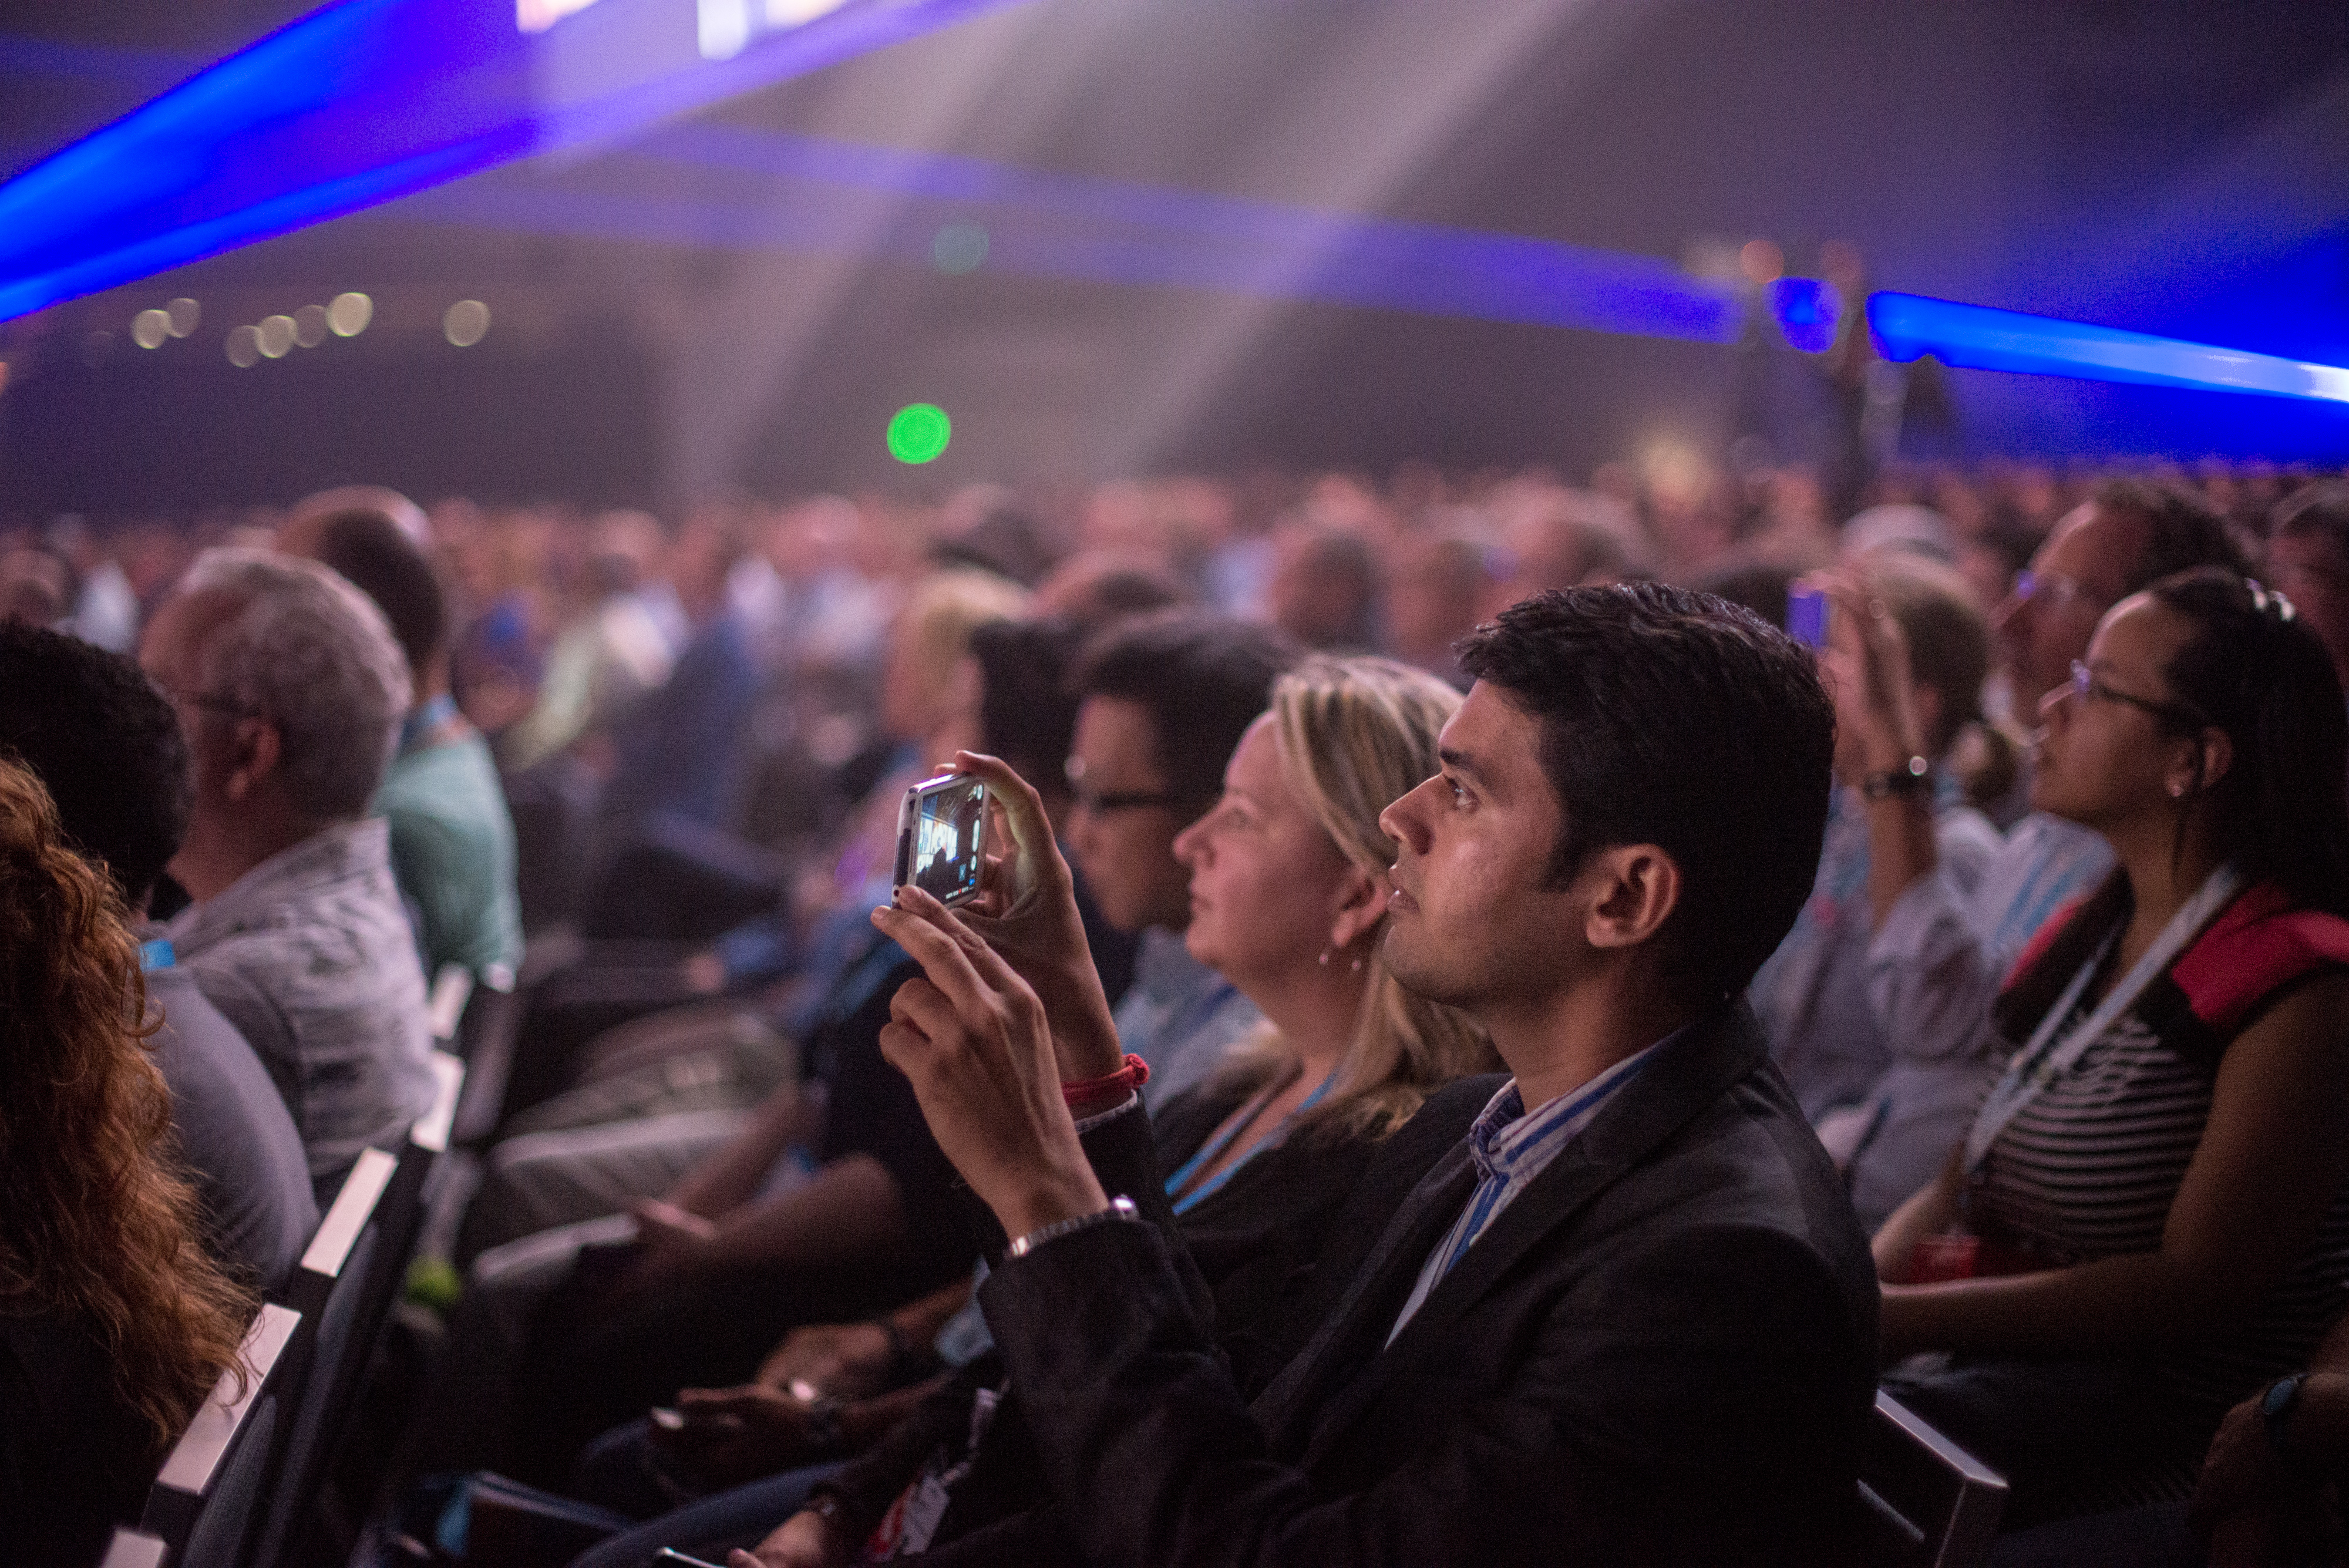 3 Ways to Get the Most Out of Dreamforce 2016